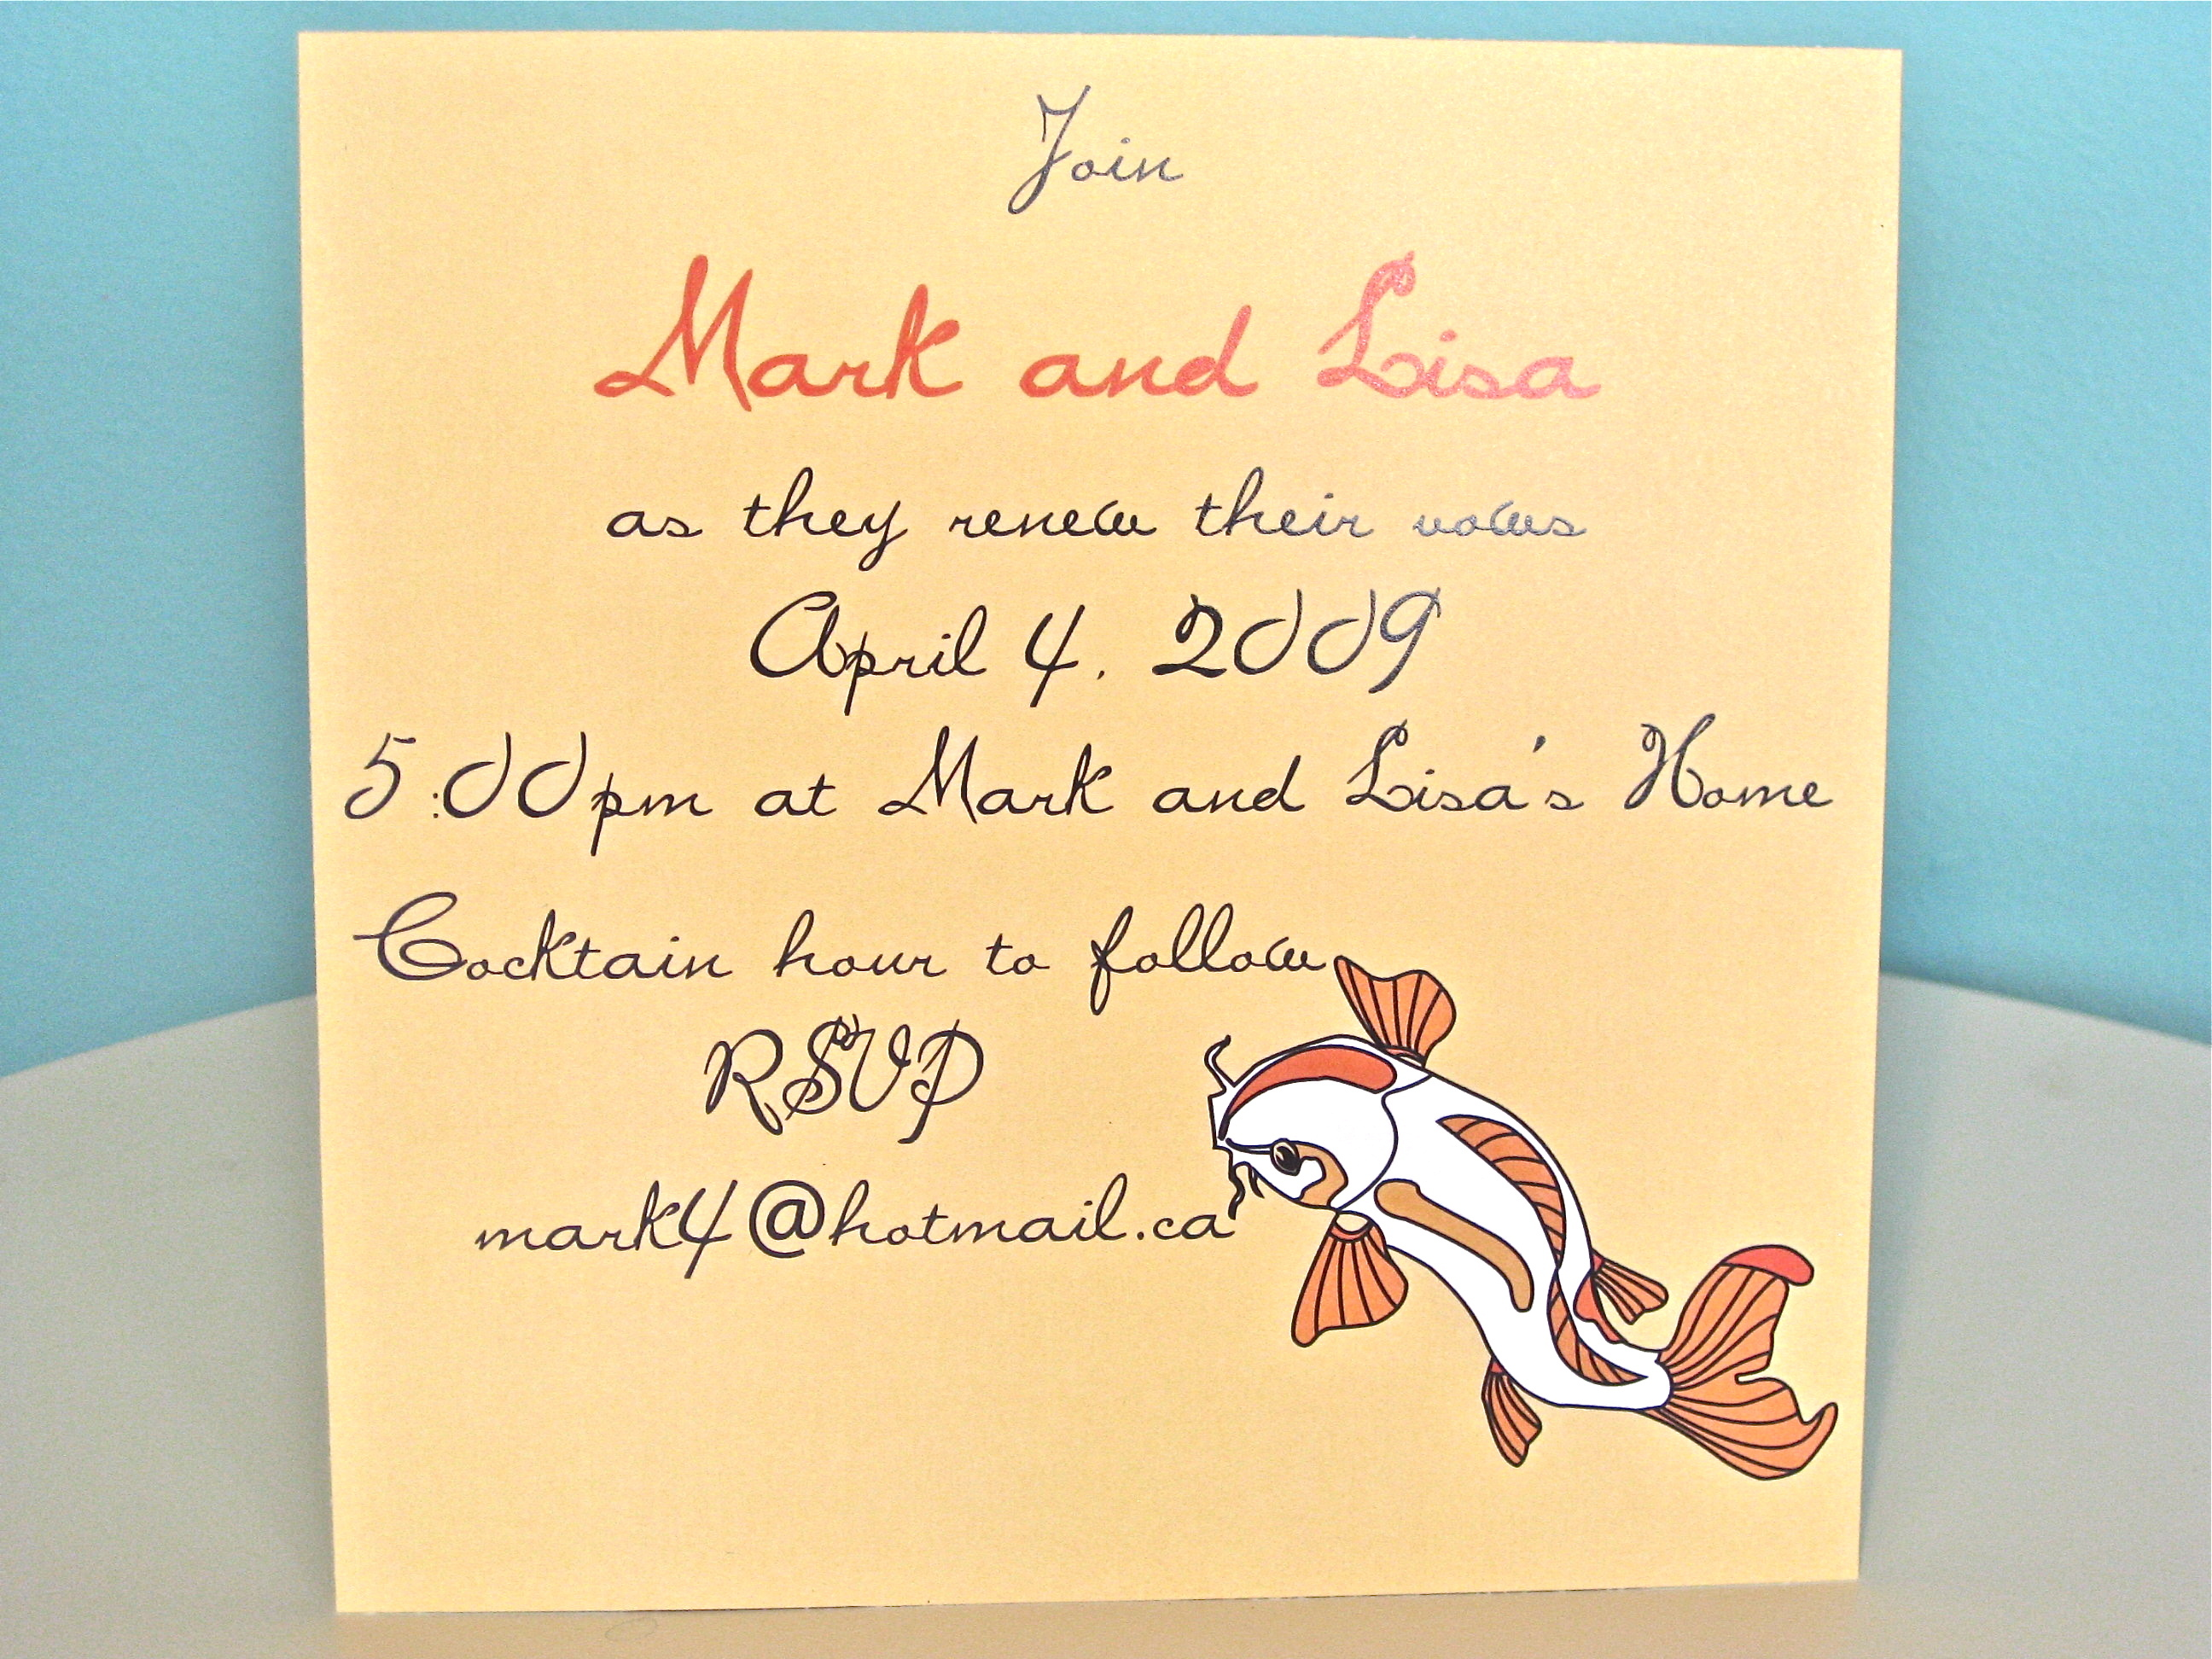 Stationery, white, yellow, orange, gold, invitation, Invitations, Wedding, Custom, Fish, Design, Koi, Graphic, Jillybean design